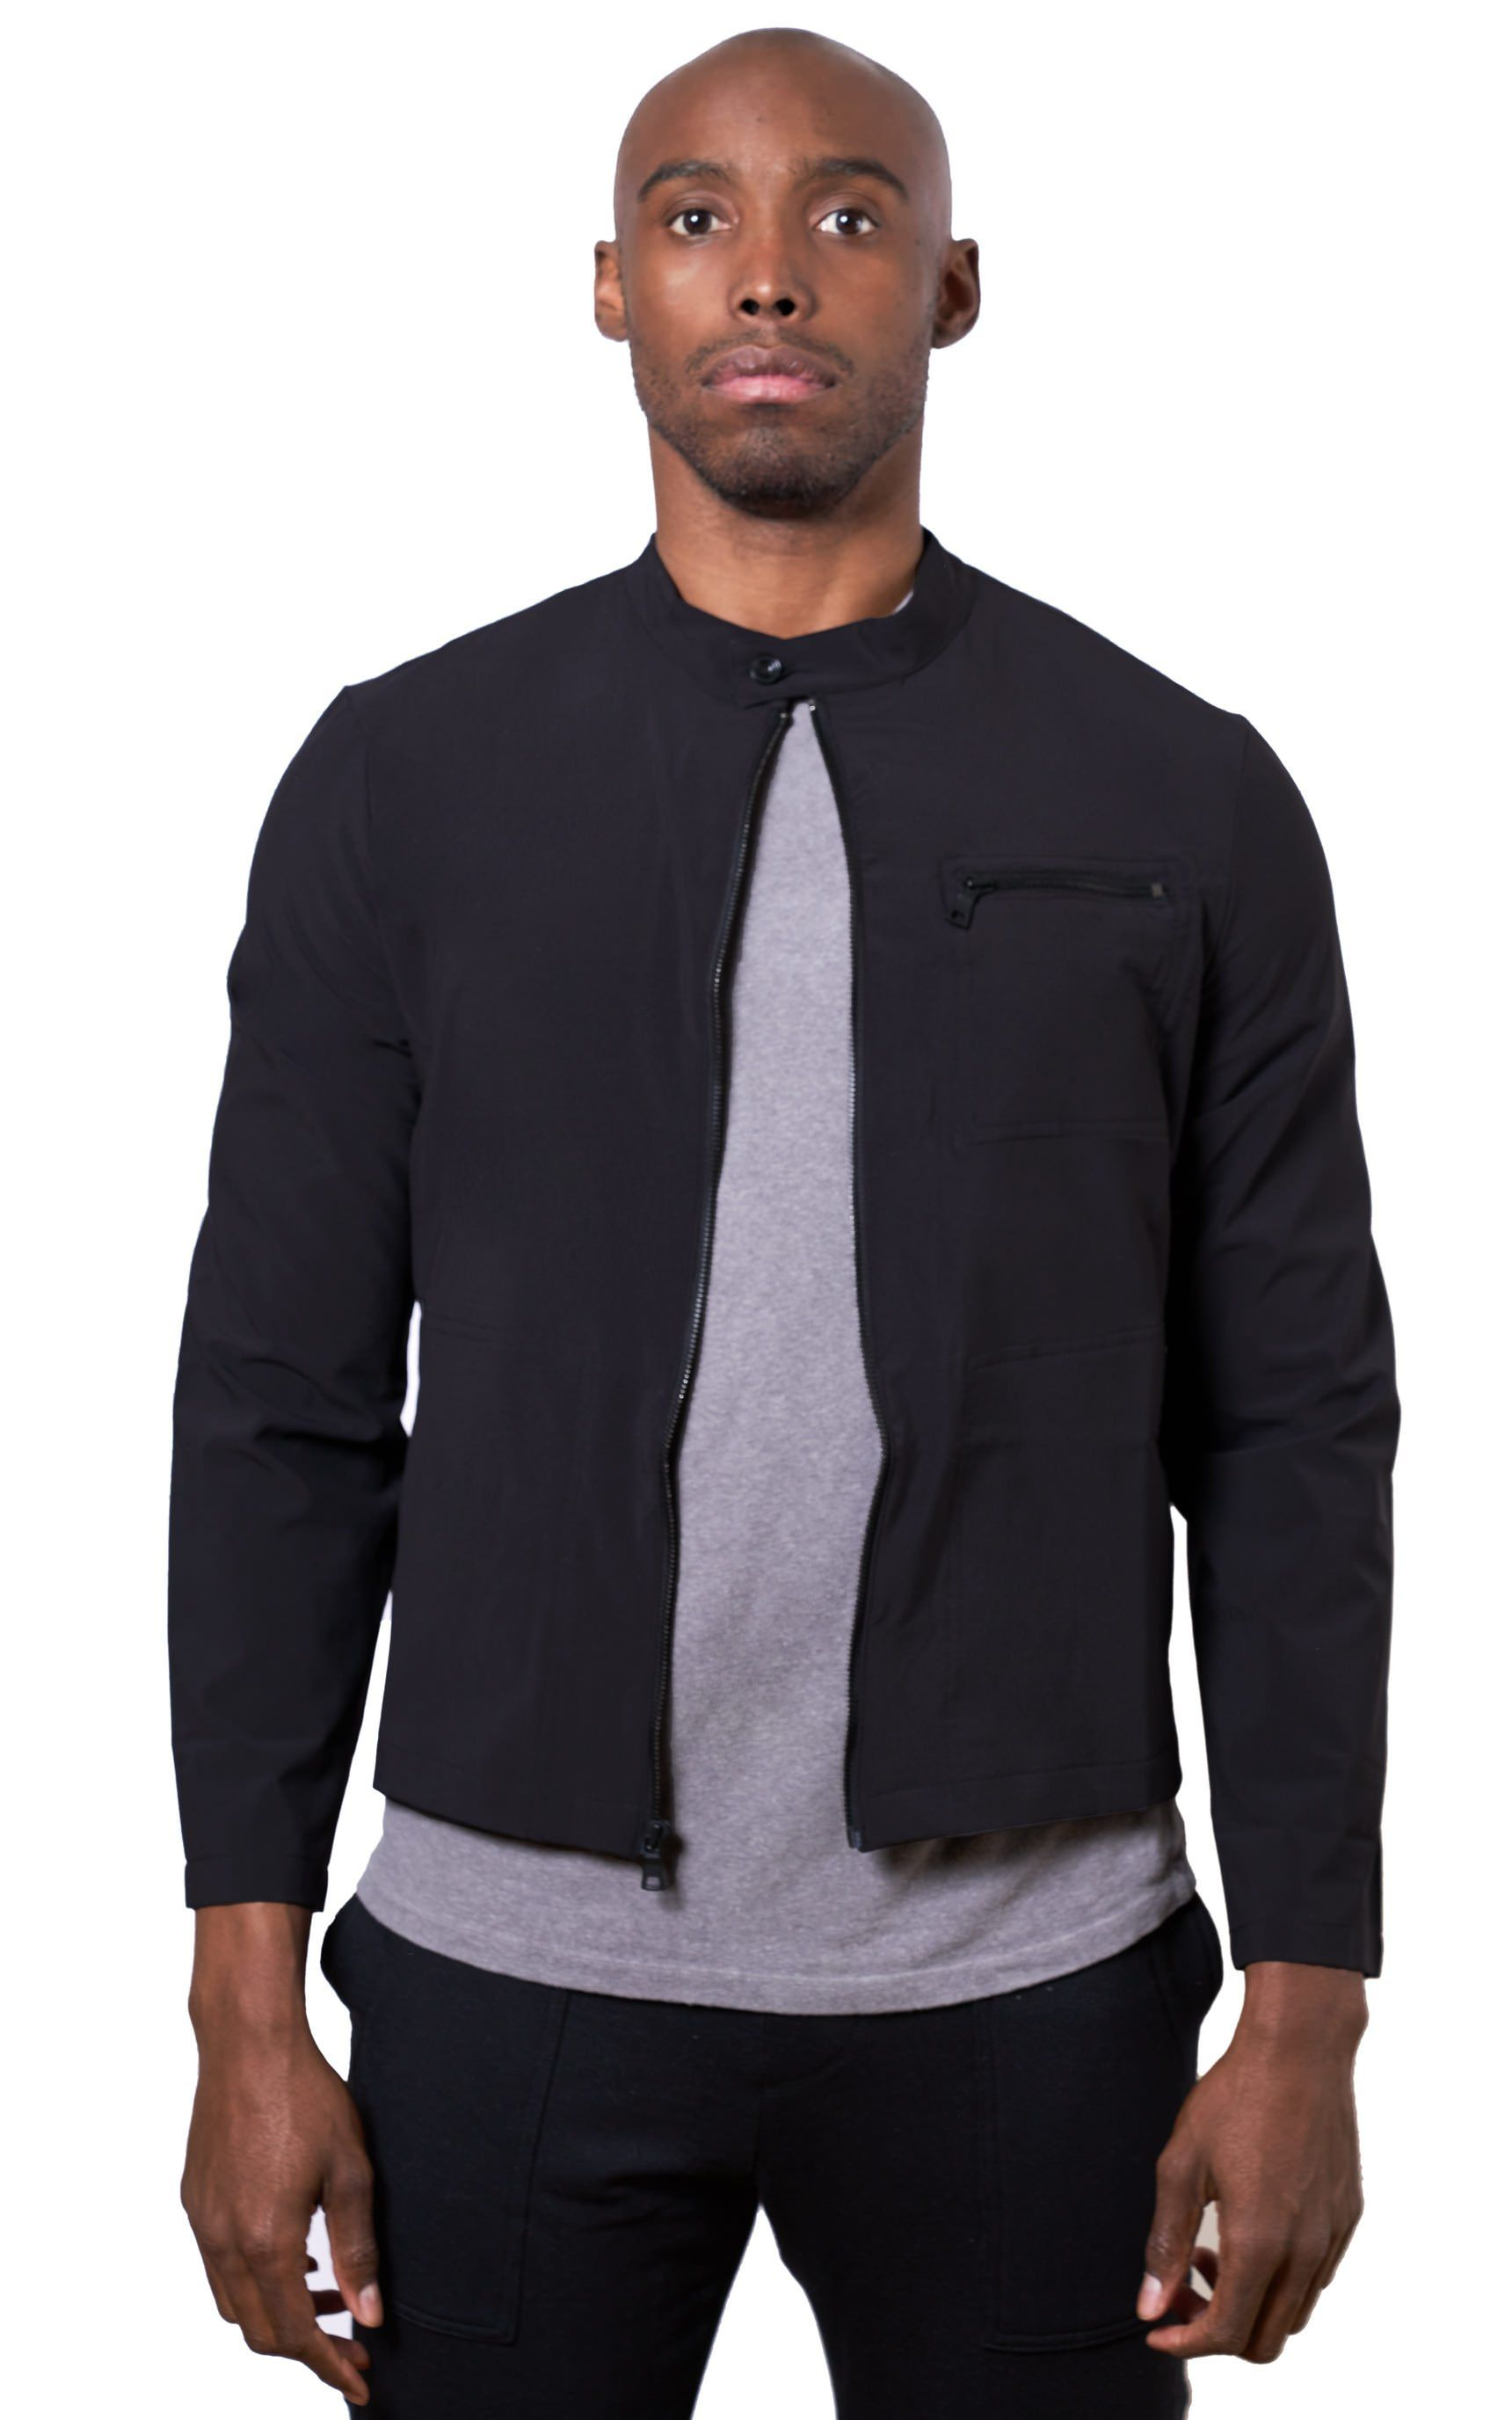 Tech Jacket in Black - Mitchell Evan